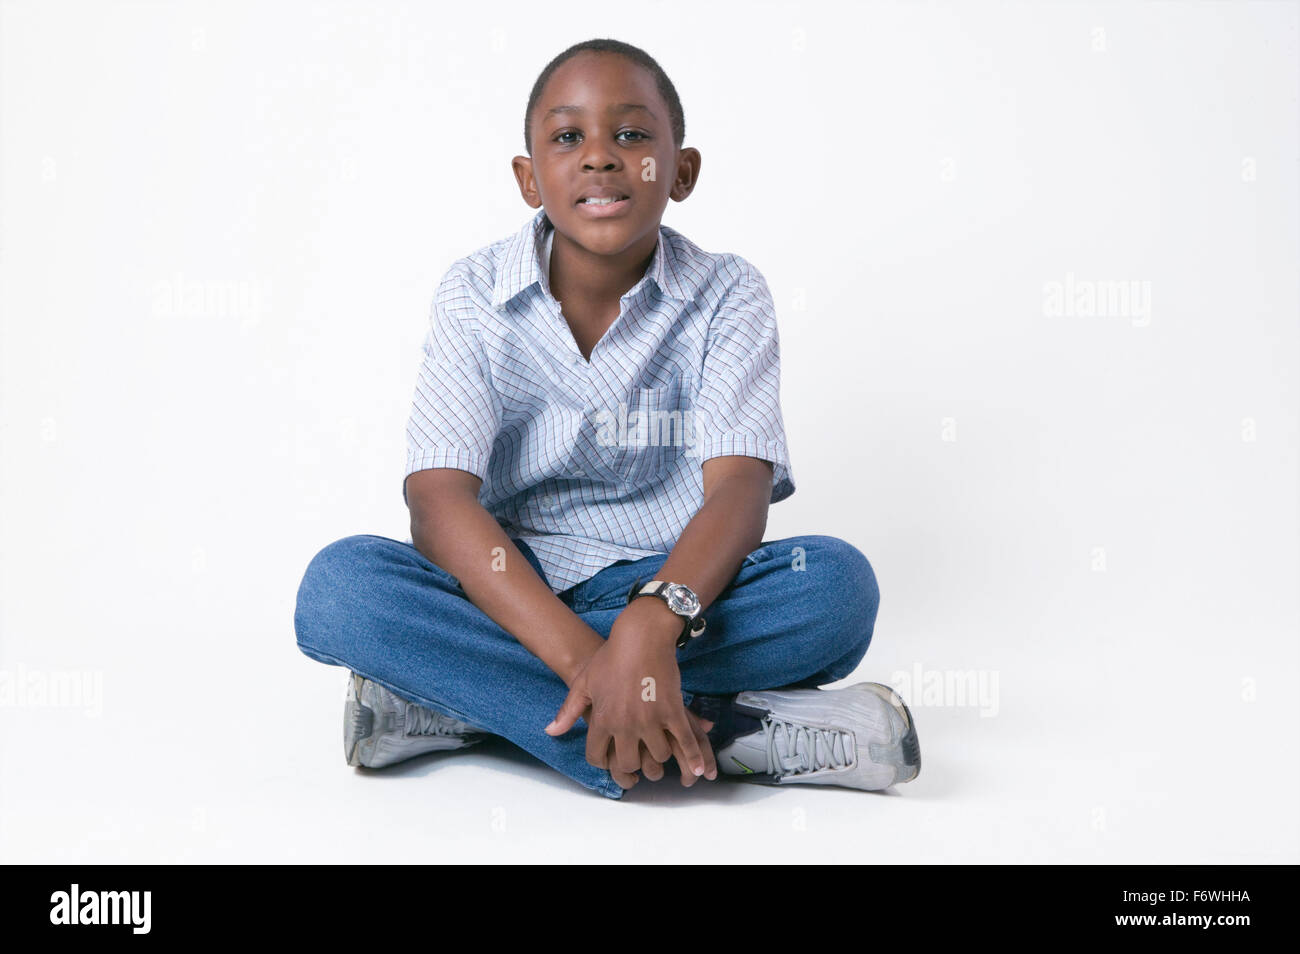 Young boy sitting on the floor crossed legged, - Stock Image